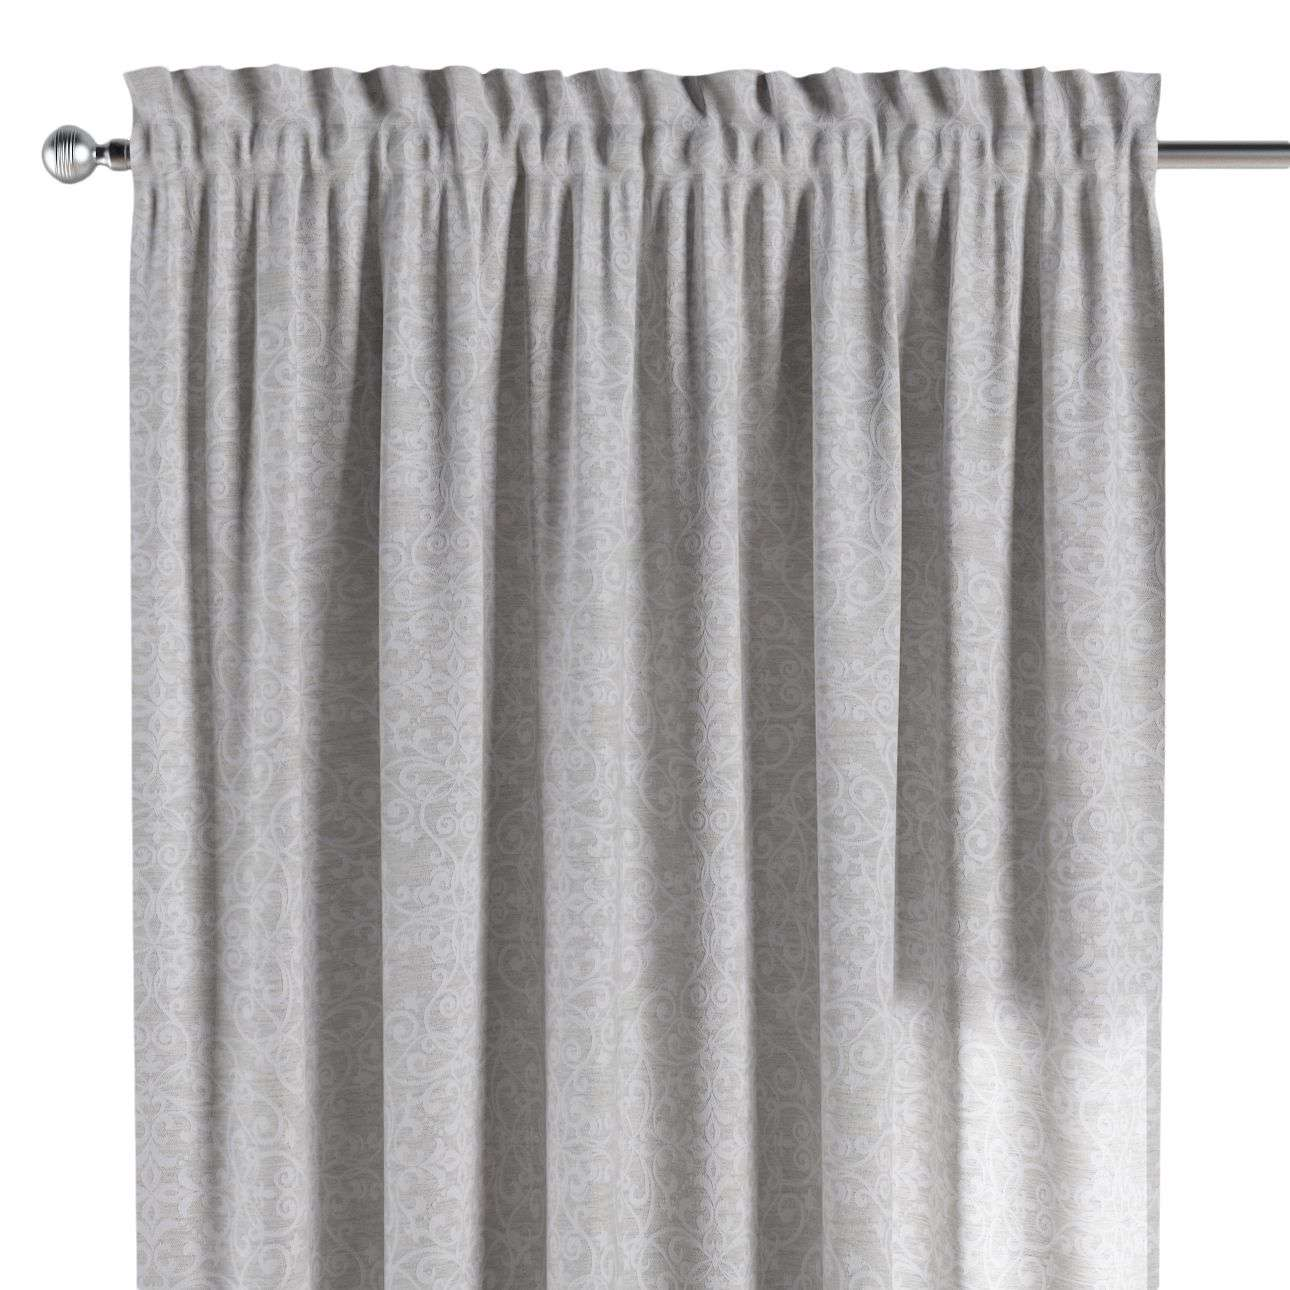 Slot and frill curtains 130 x 260 cm (51 x 102 inch) in collection Venice, fabric: 140-49